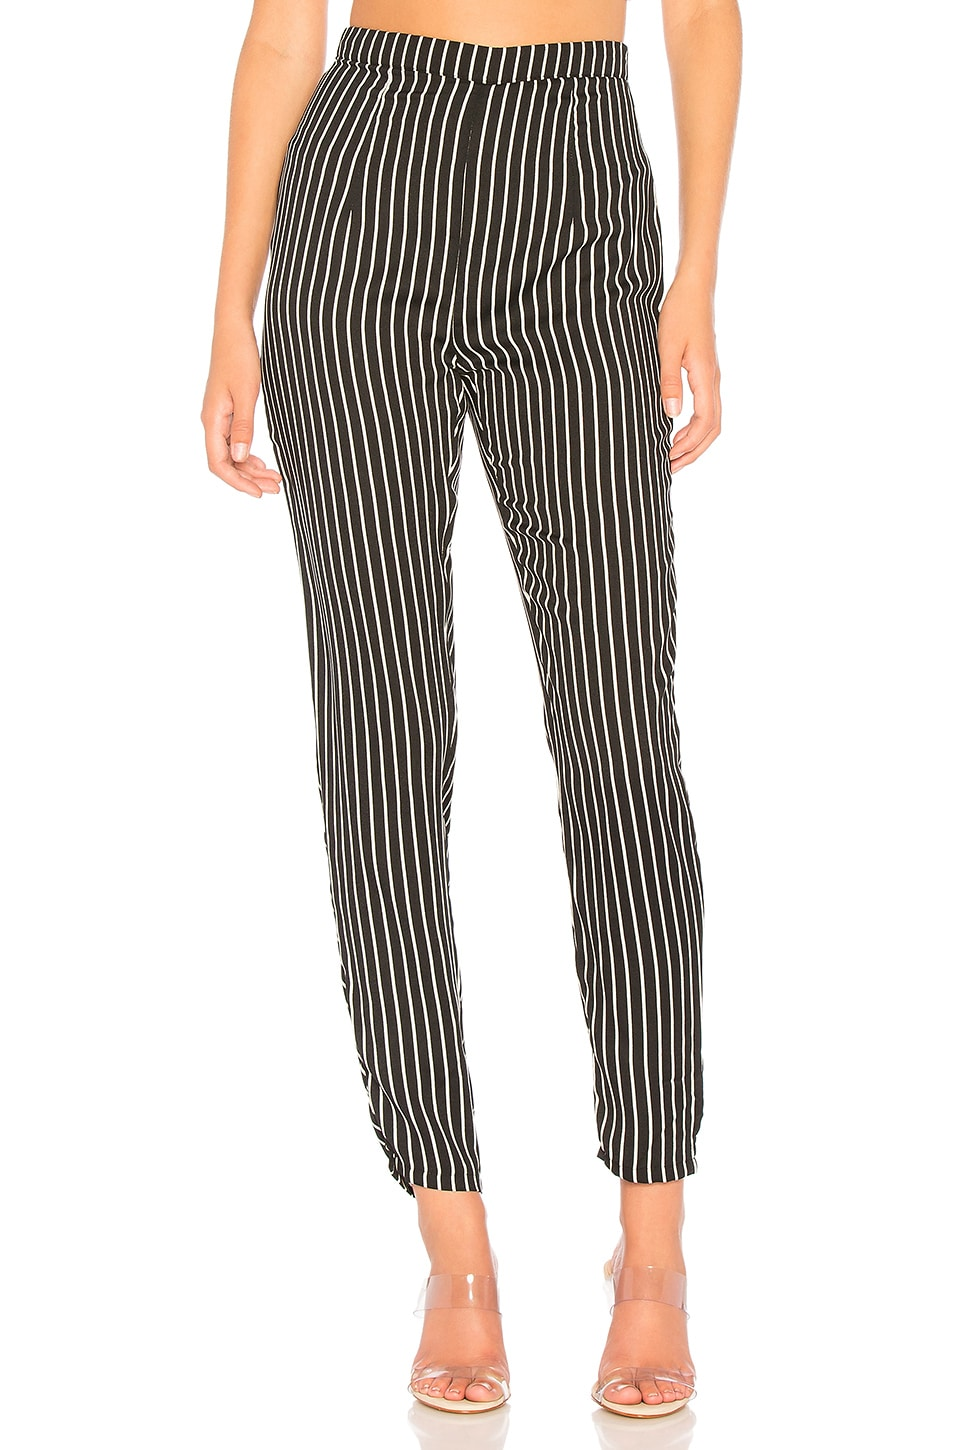 About Us Kourtney Striped Pant in Black & White